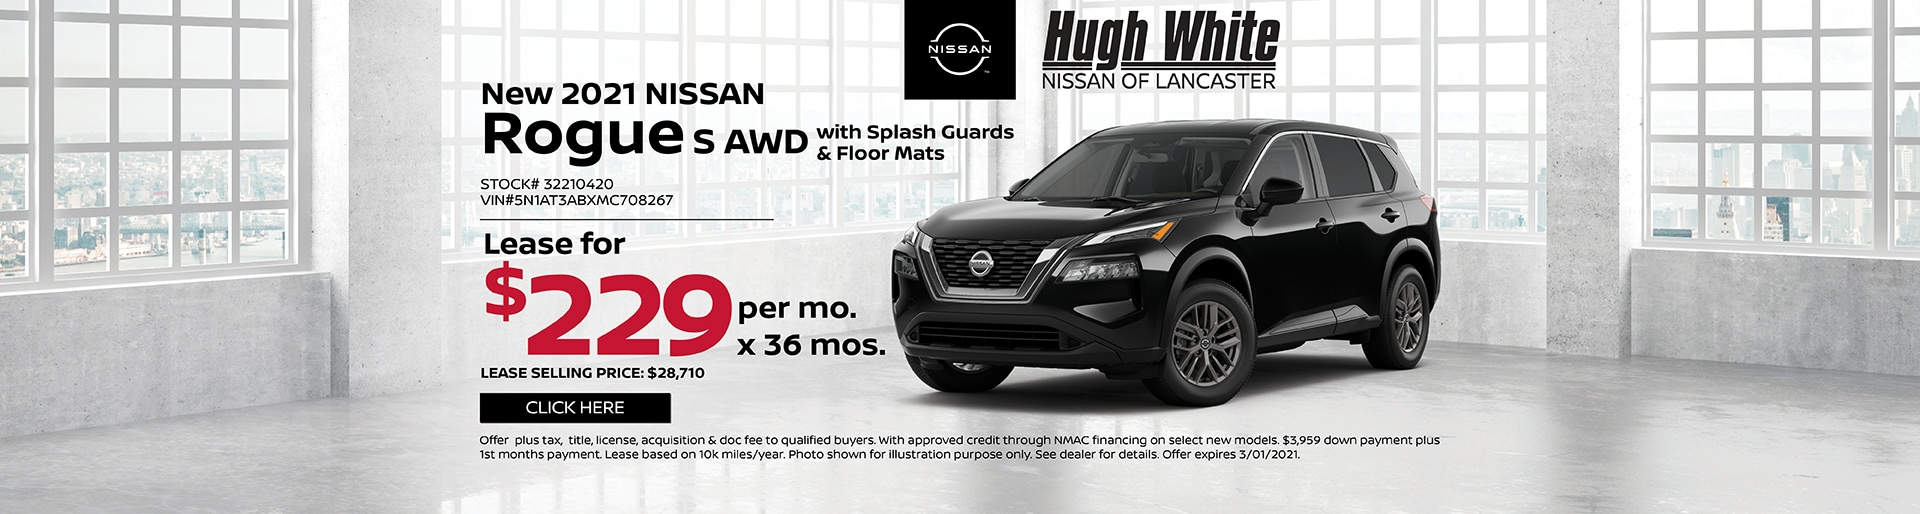 2021 Nissan Rogue Special Offer | Hugh White Nissan Lancaster